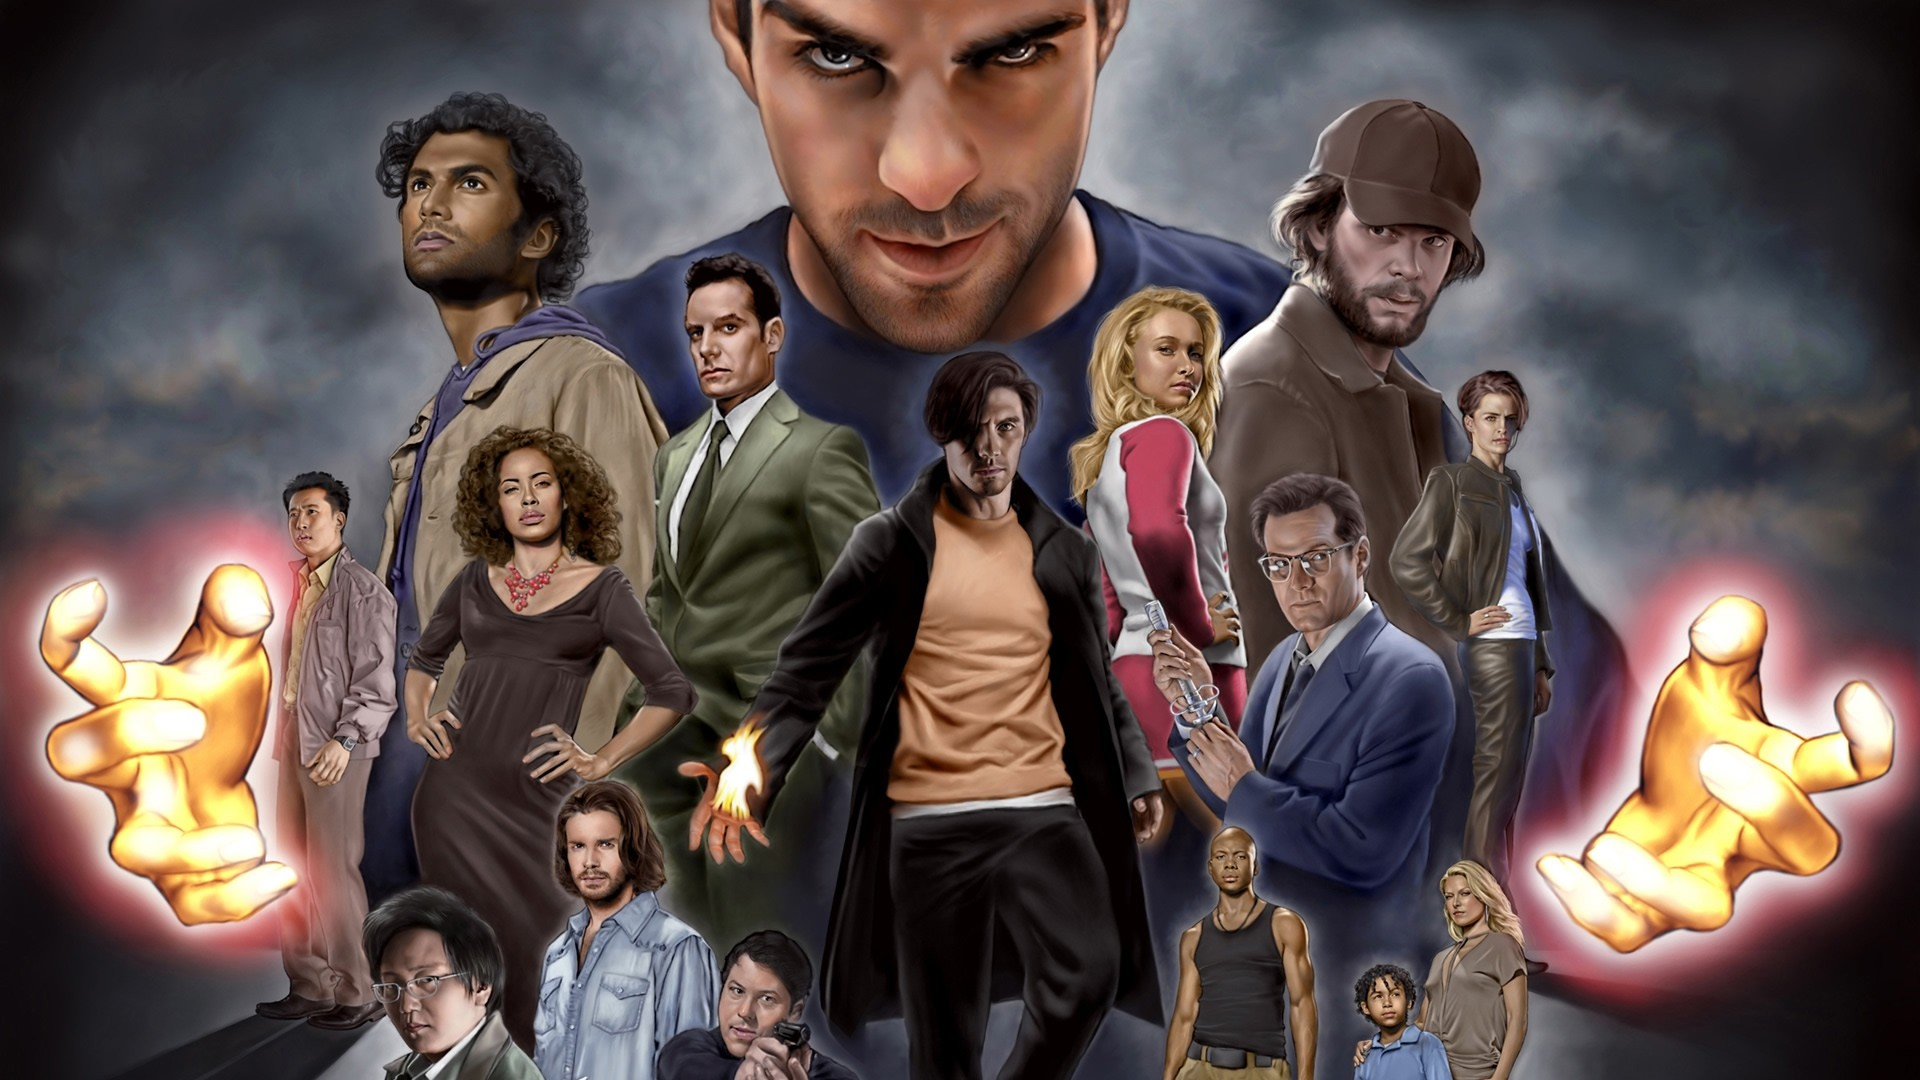 Painted wallpaper with the characters from the TV series Heroes (Heroes), based on a comic book.